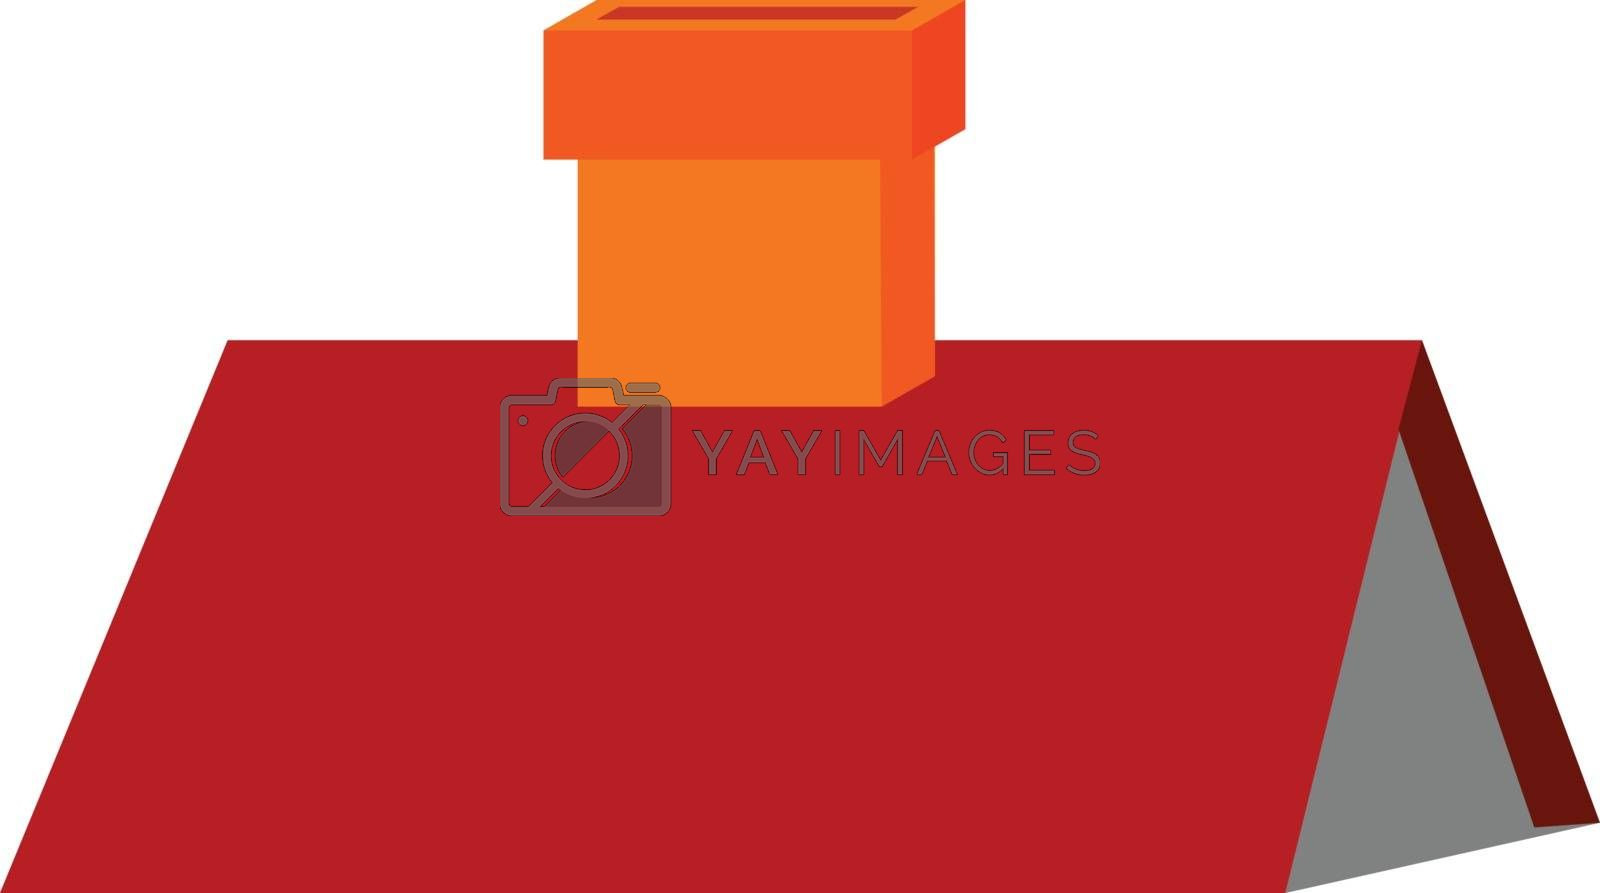 Royalty free image of Clipart of a red-colored triangular roof with a chimney vector o by Morphart